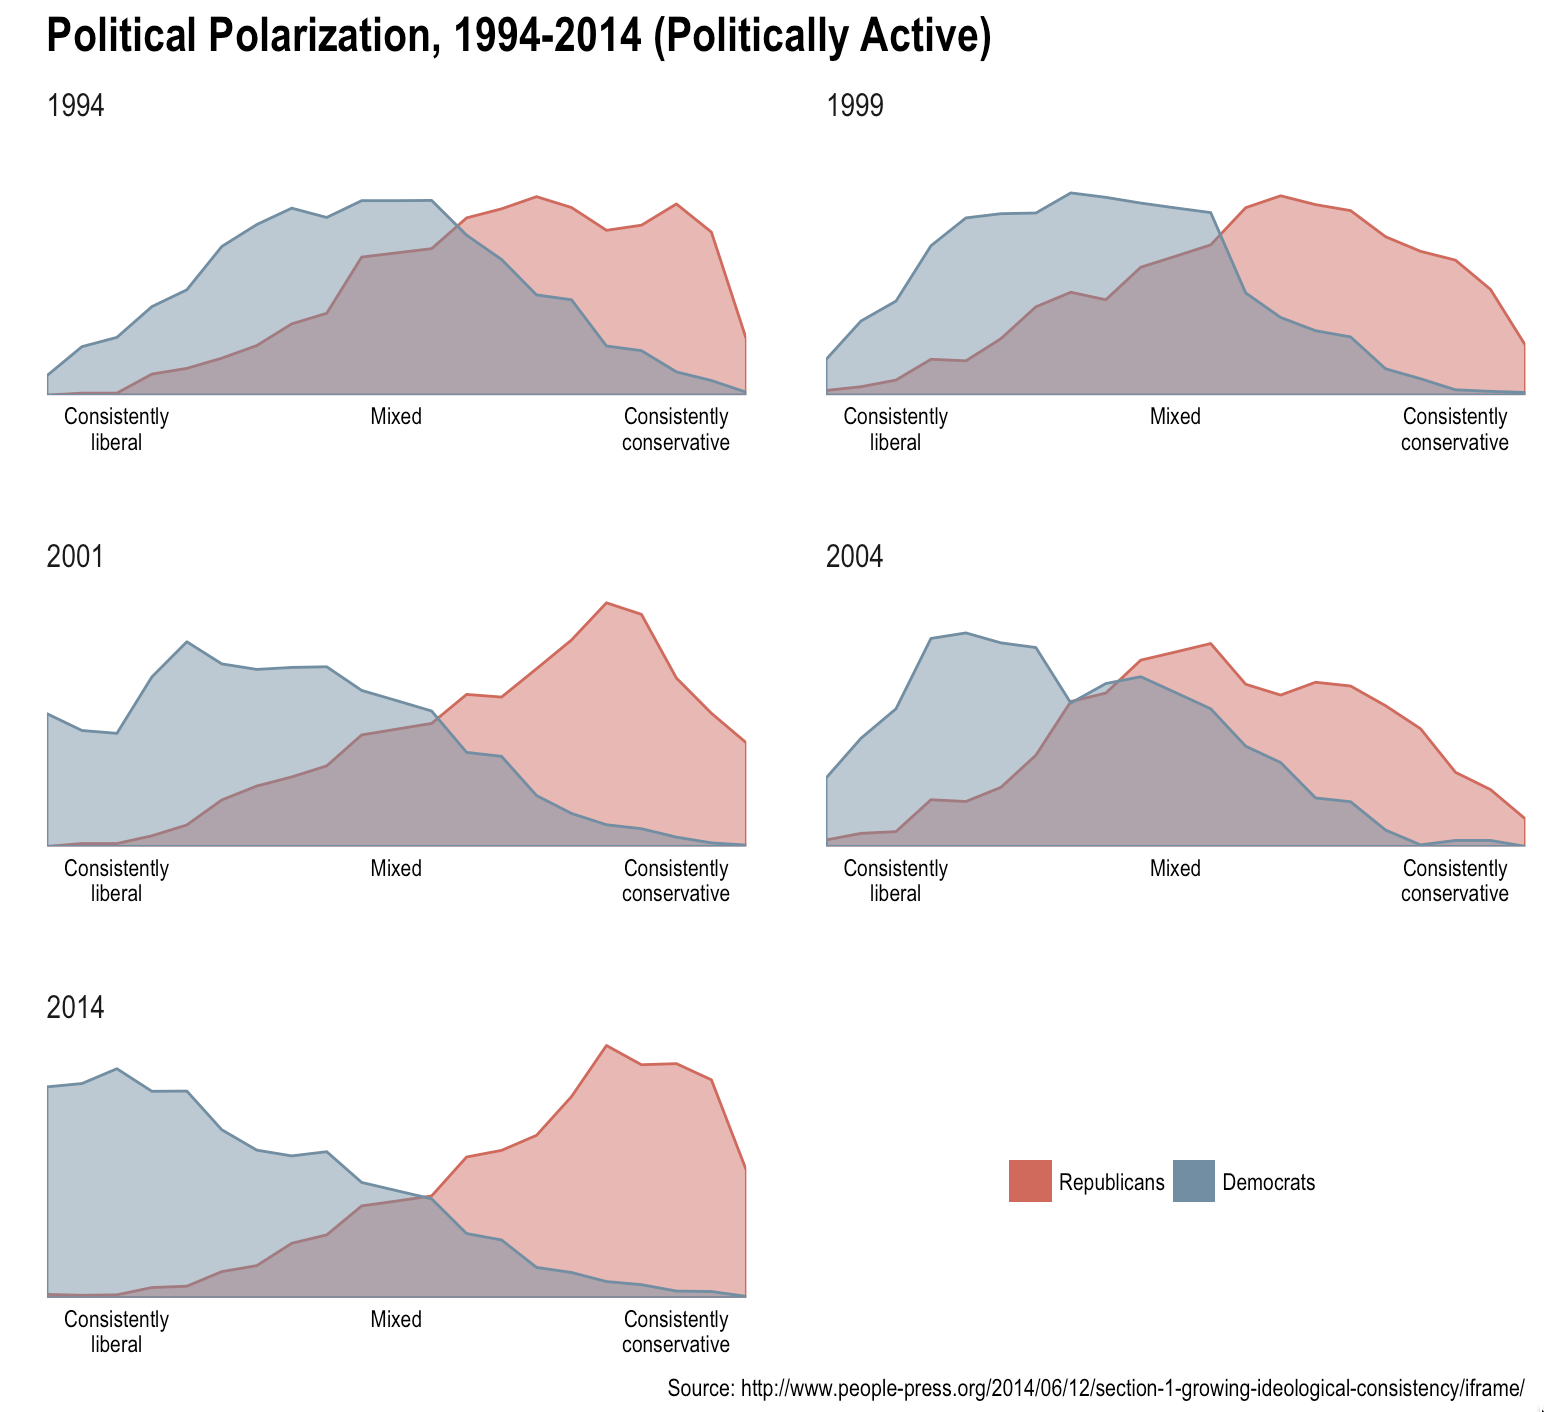 Bridging The Political Polygons Gap with ggplot2